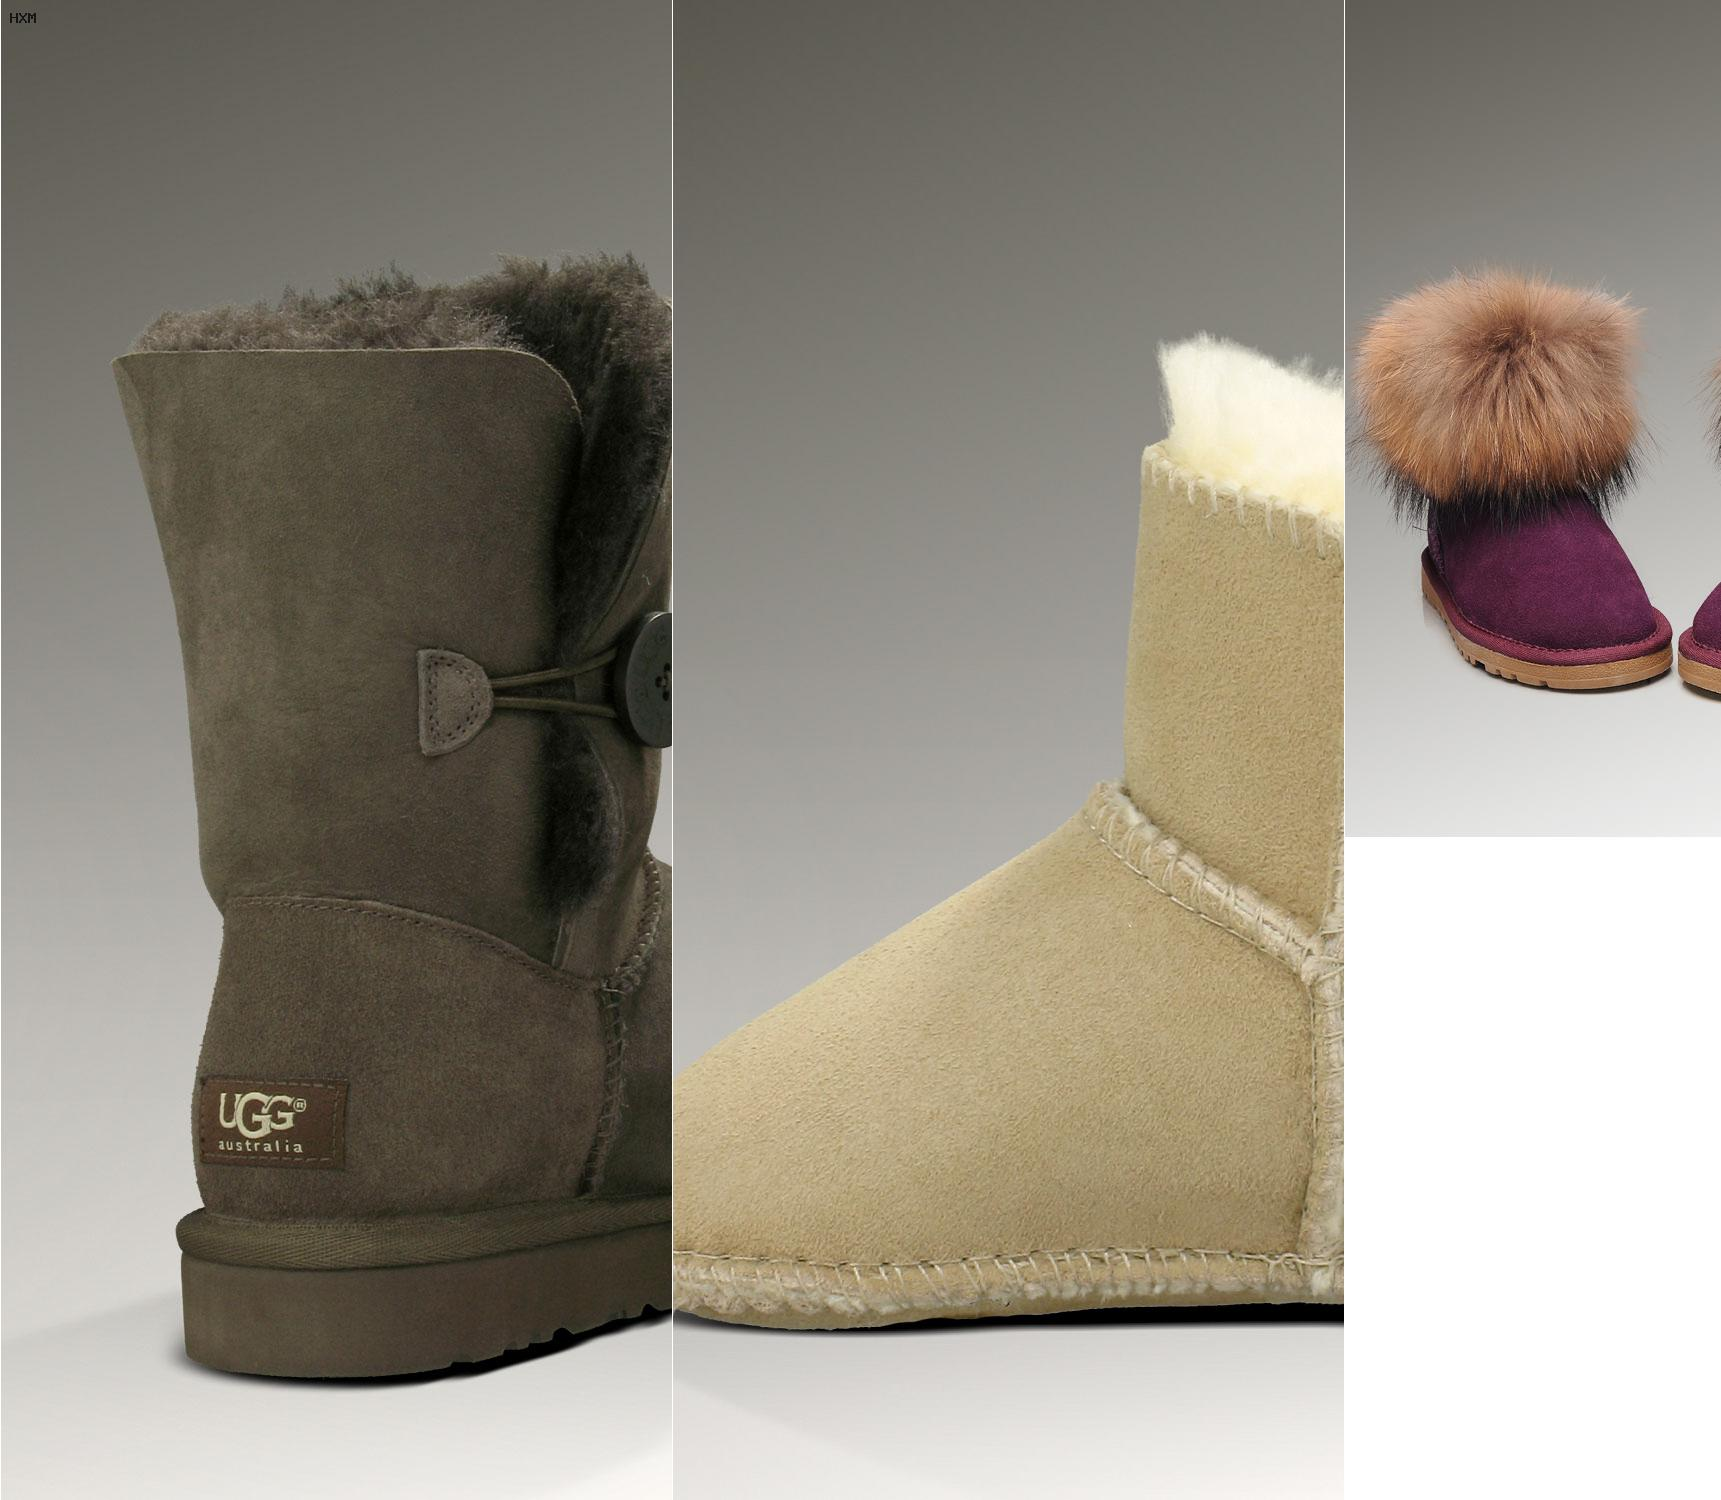 ugg shoes amsterdam